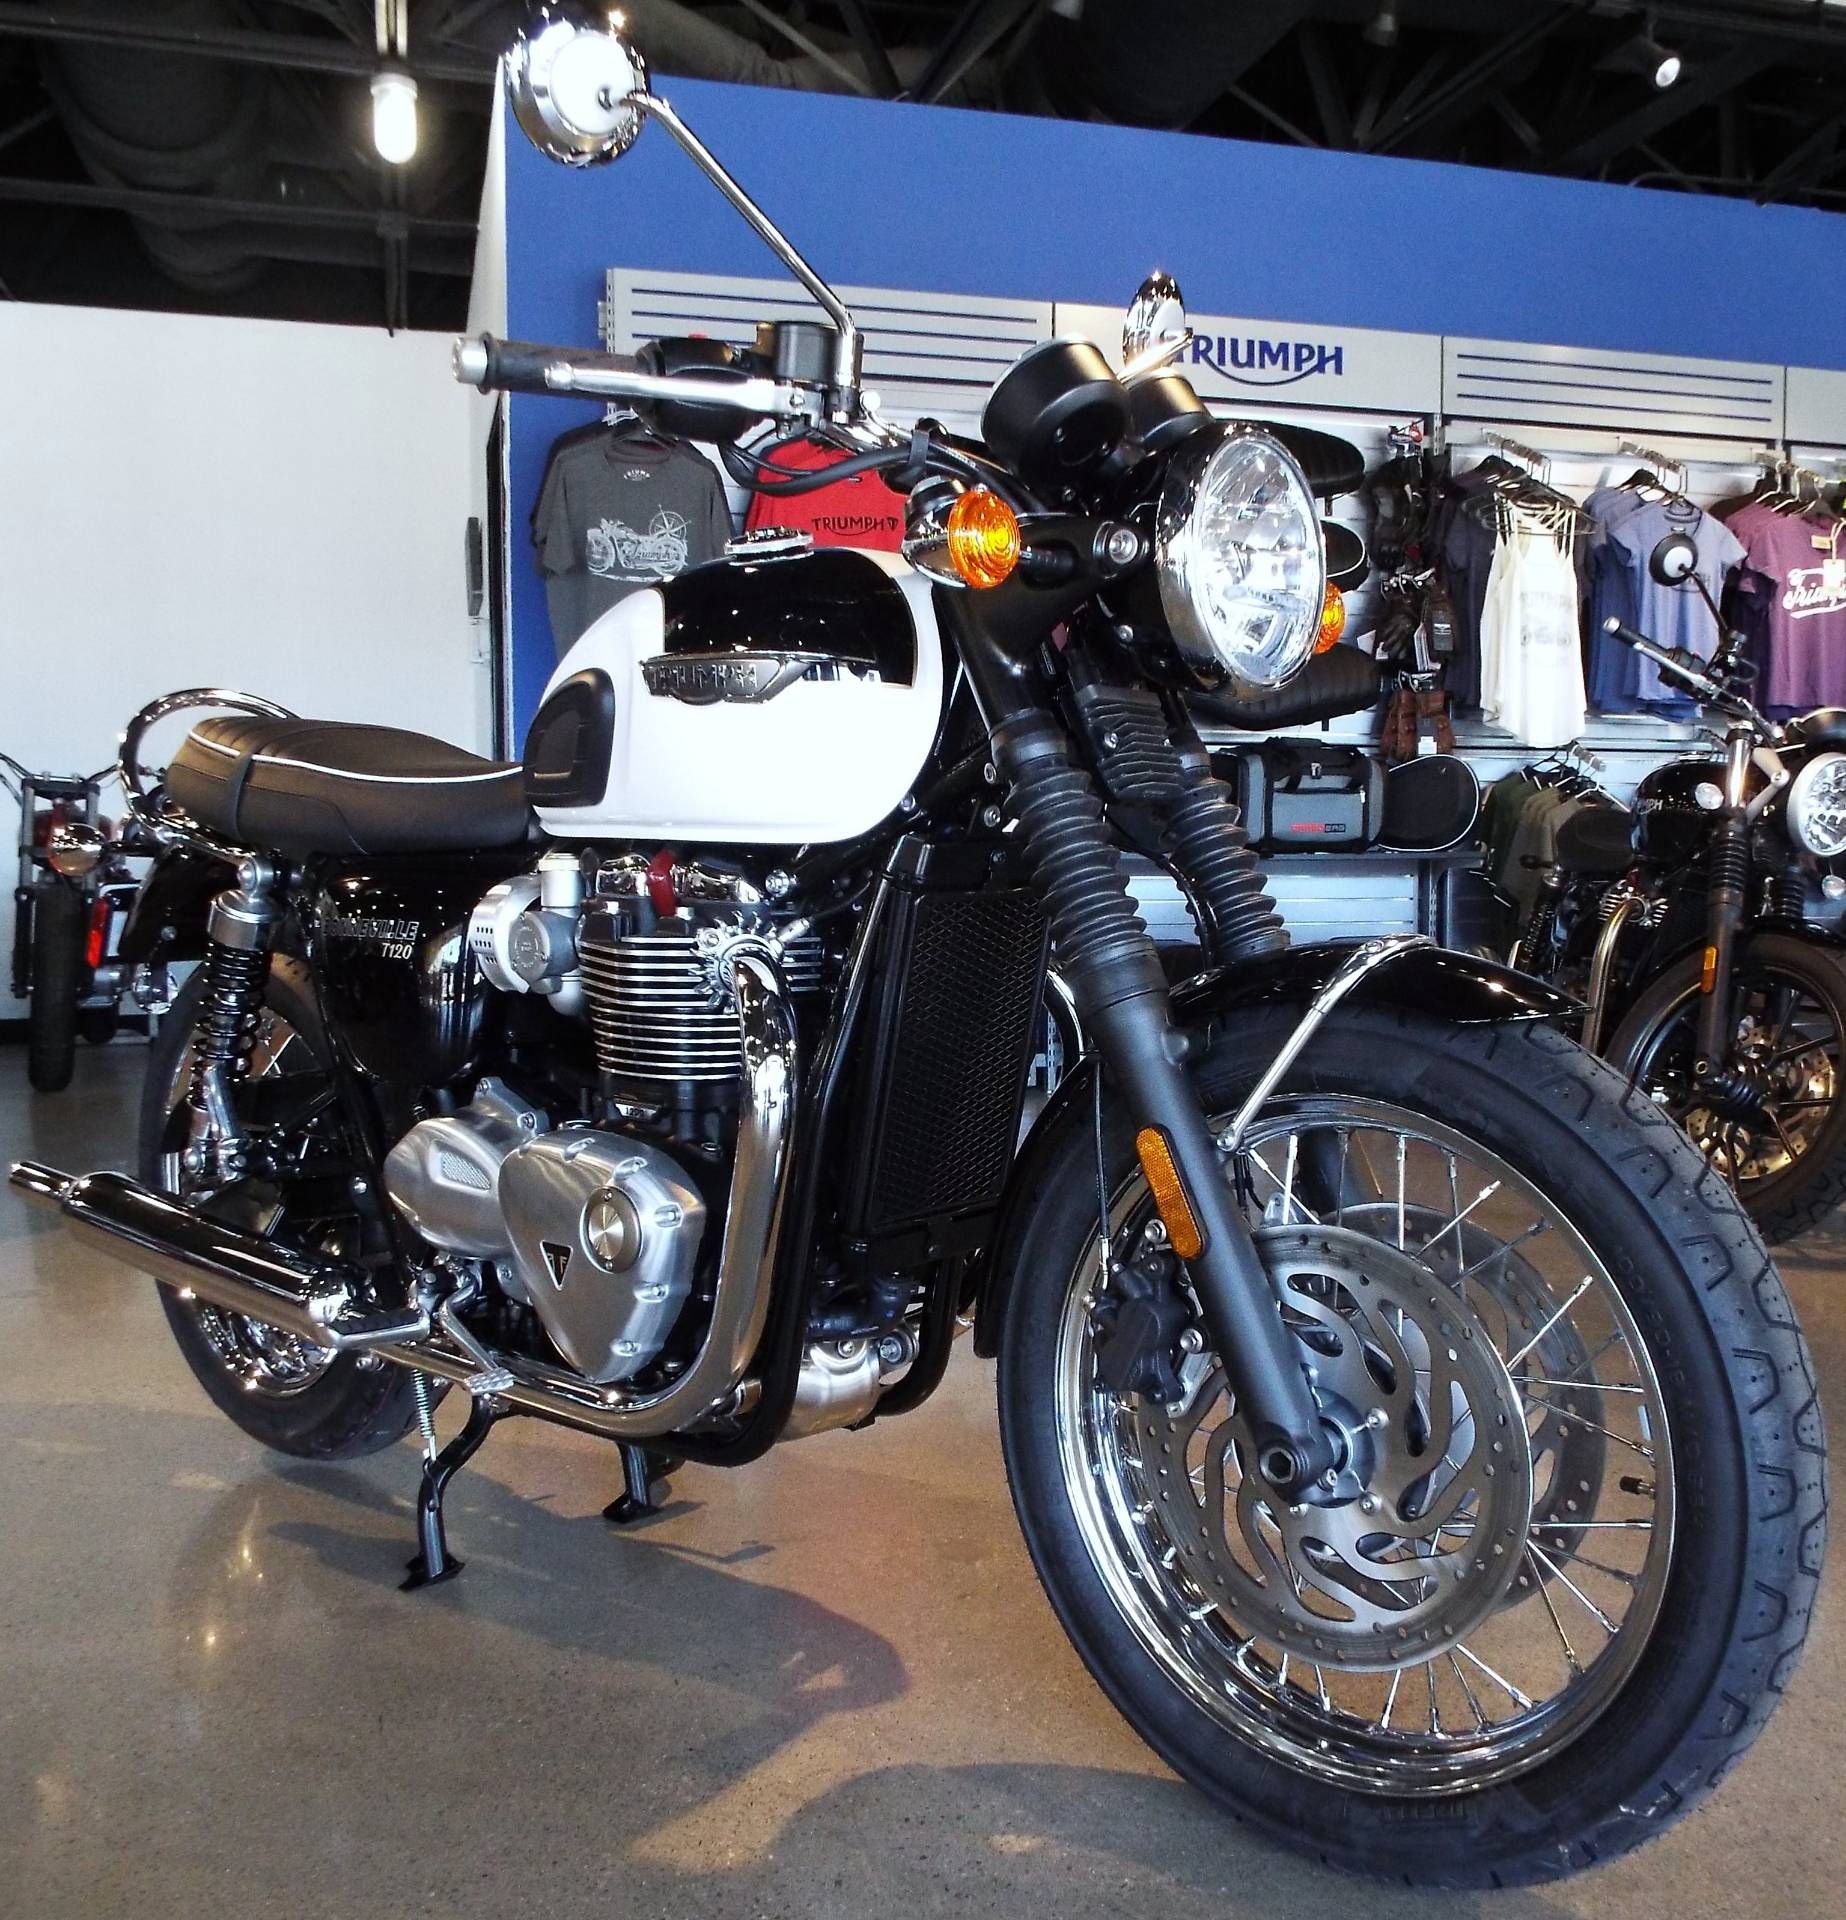 new 2017 triumph bonneville t120 motorcycles in san bernardino ca. Black Bedroom Furniture Sets. Home Design Ideas